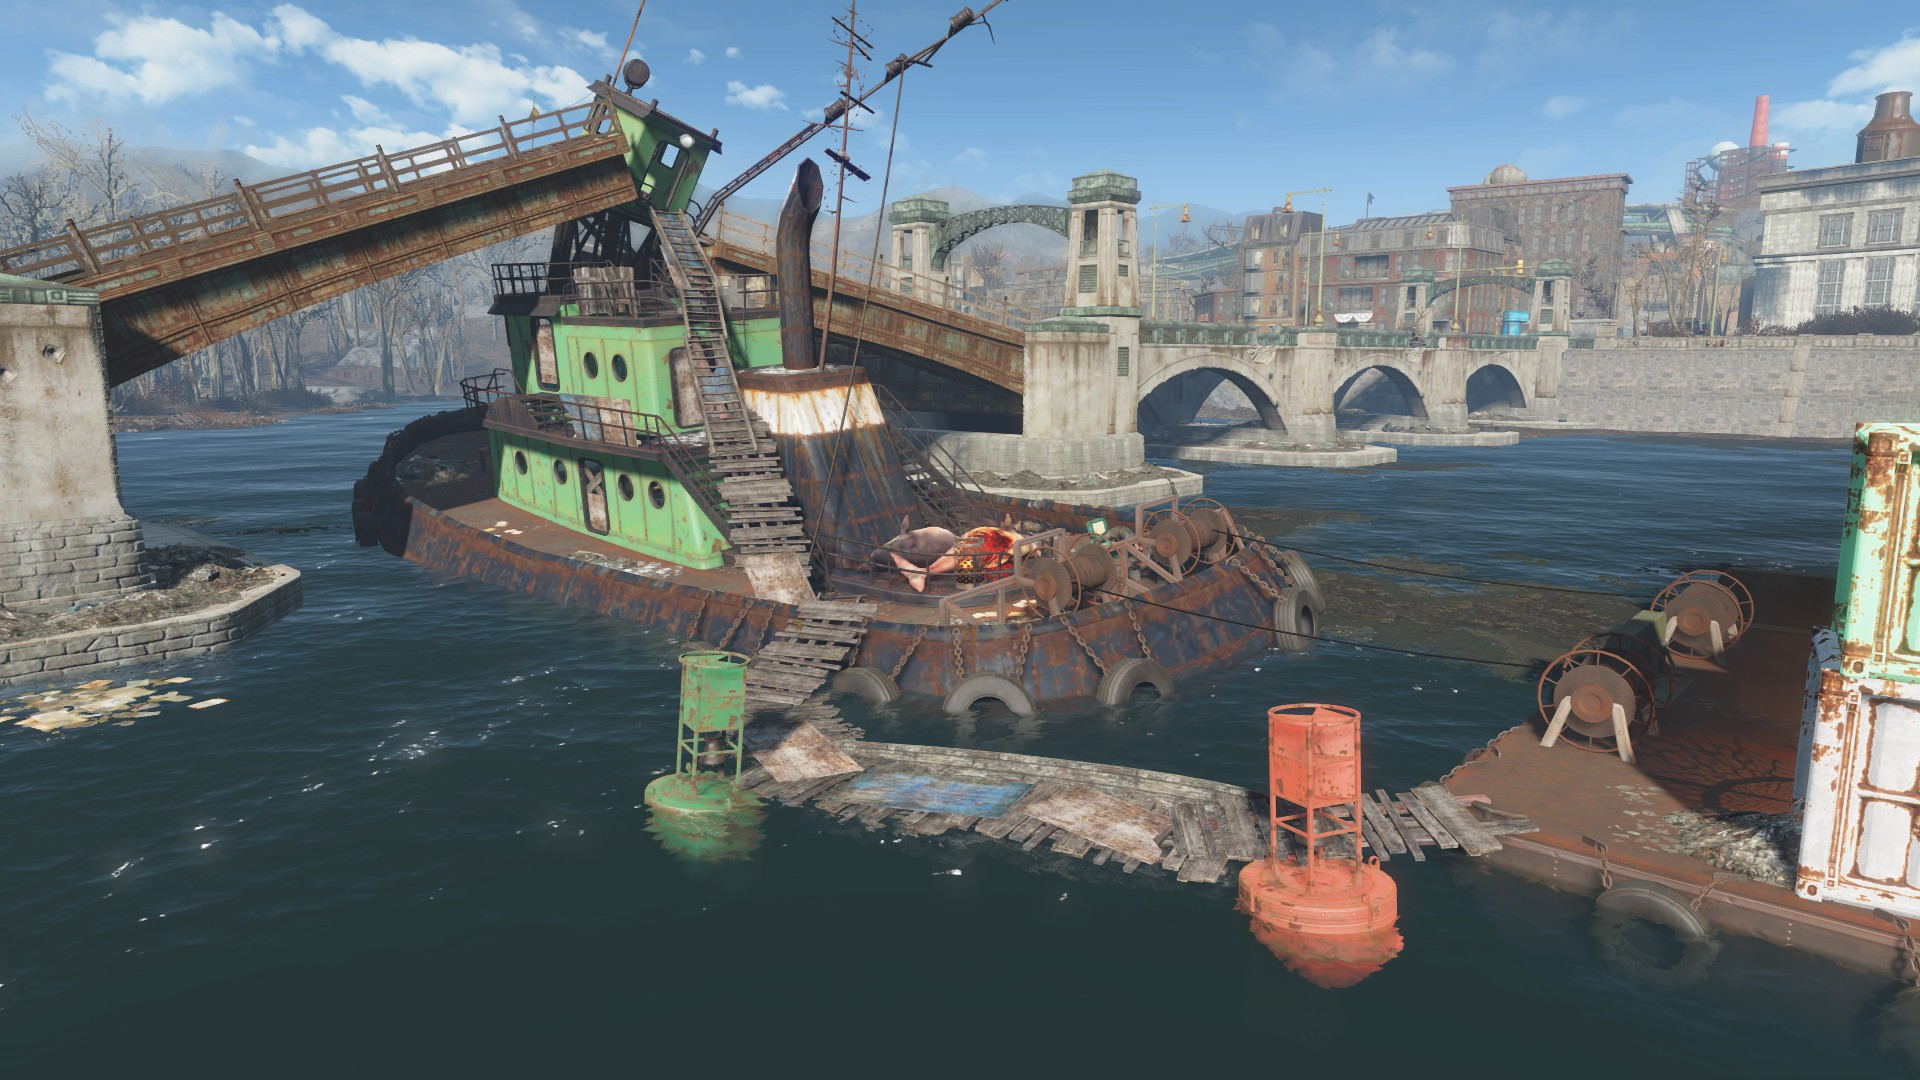 Wreck of the USS Riptide